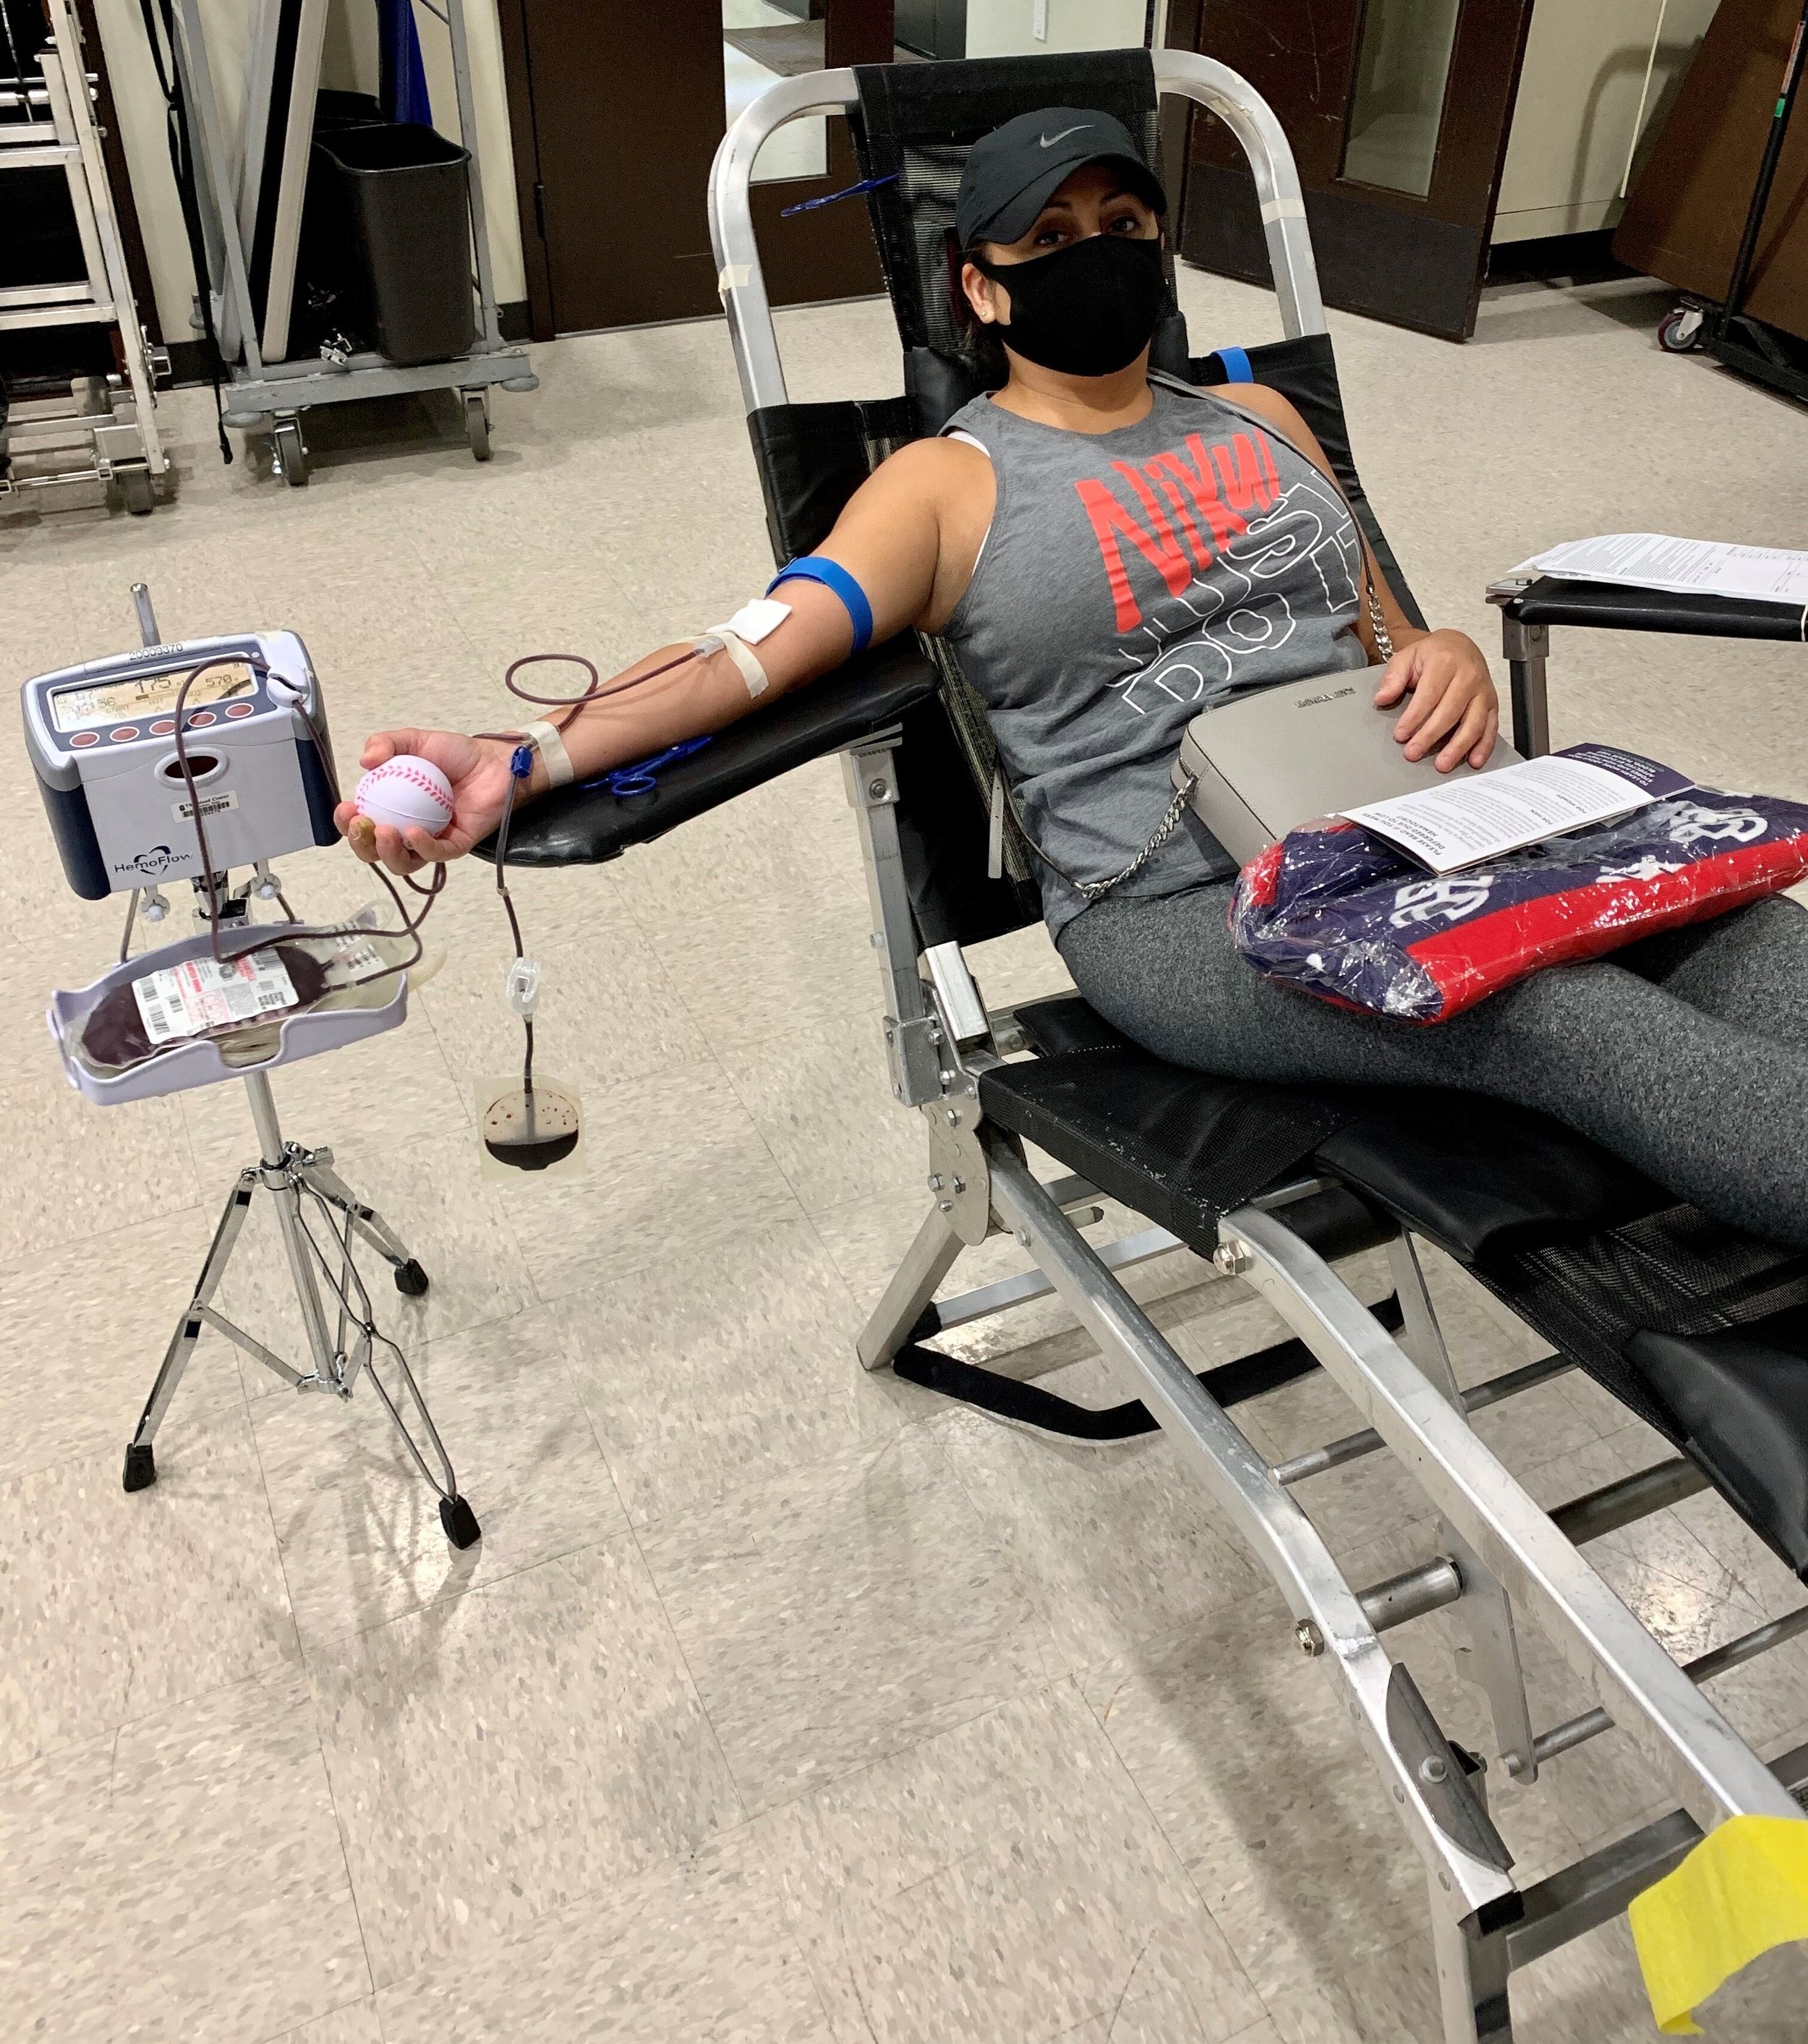 A blood donor reclined in a chair